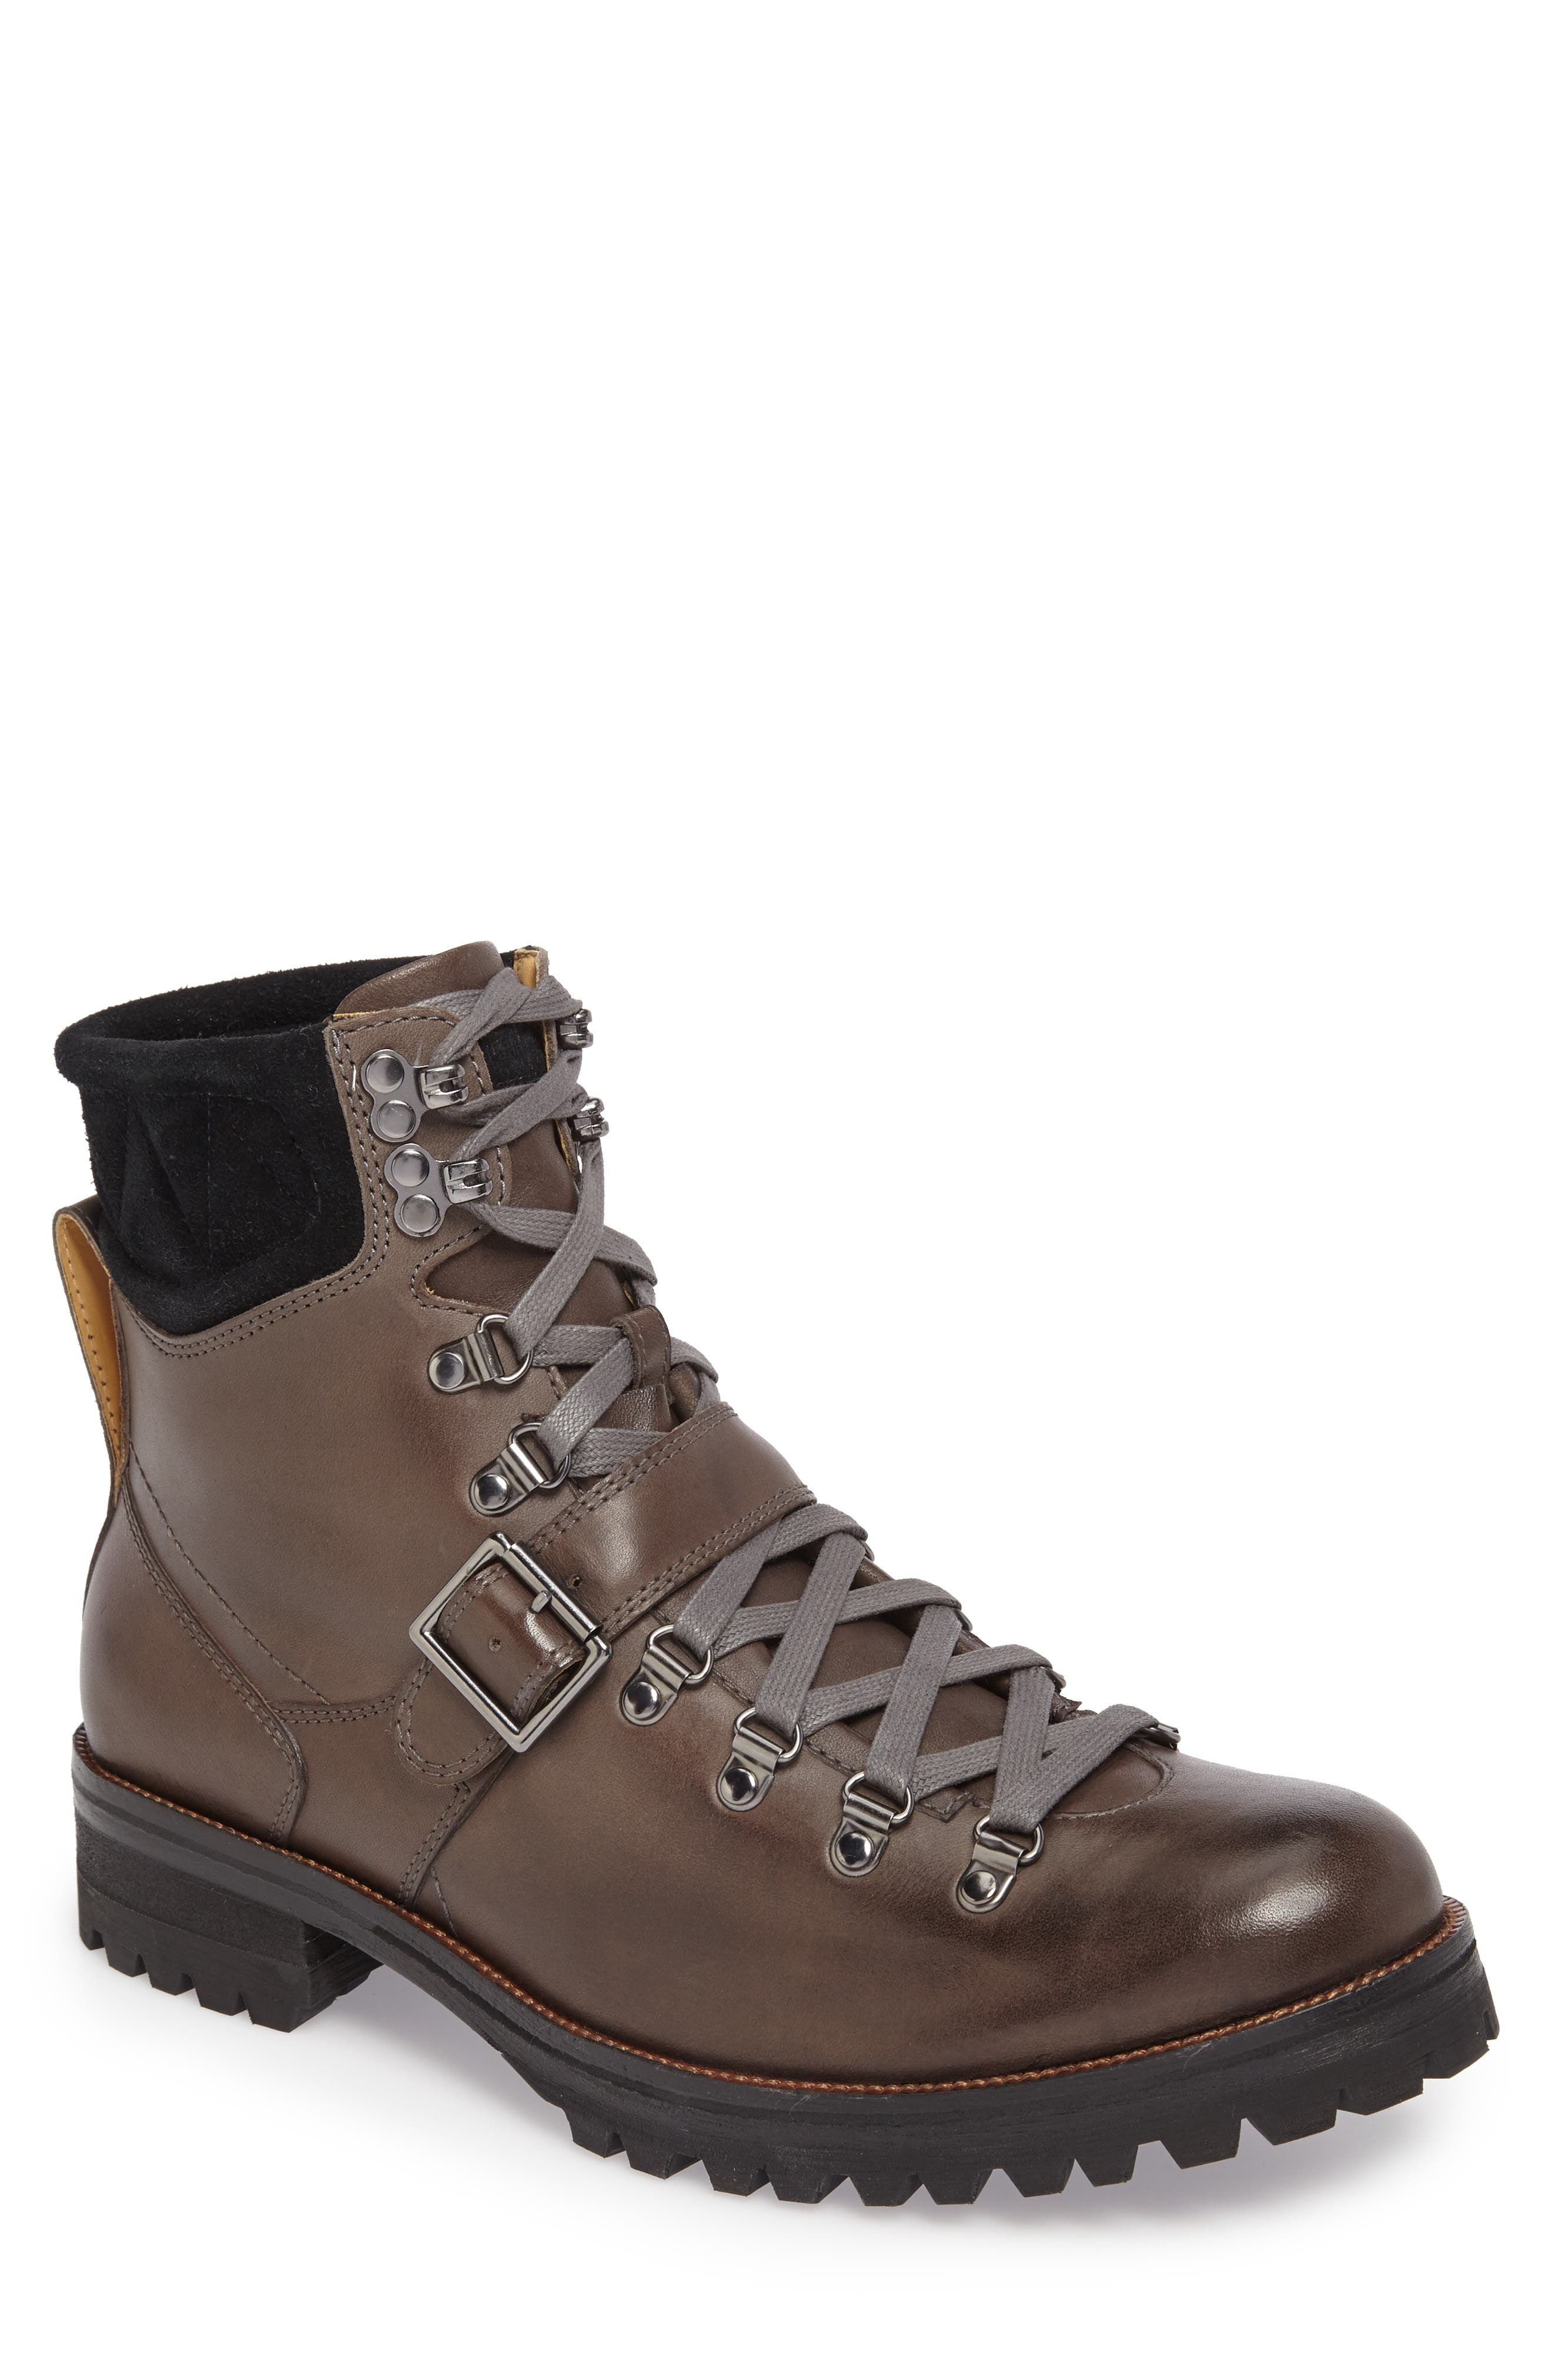 Storm Lug Hiker Boot,                         Main,                         color, GREY LEATHER